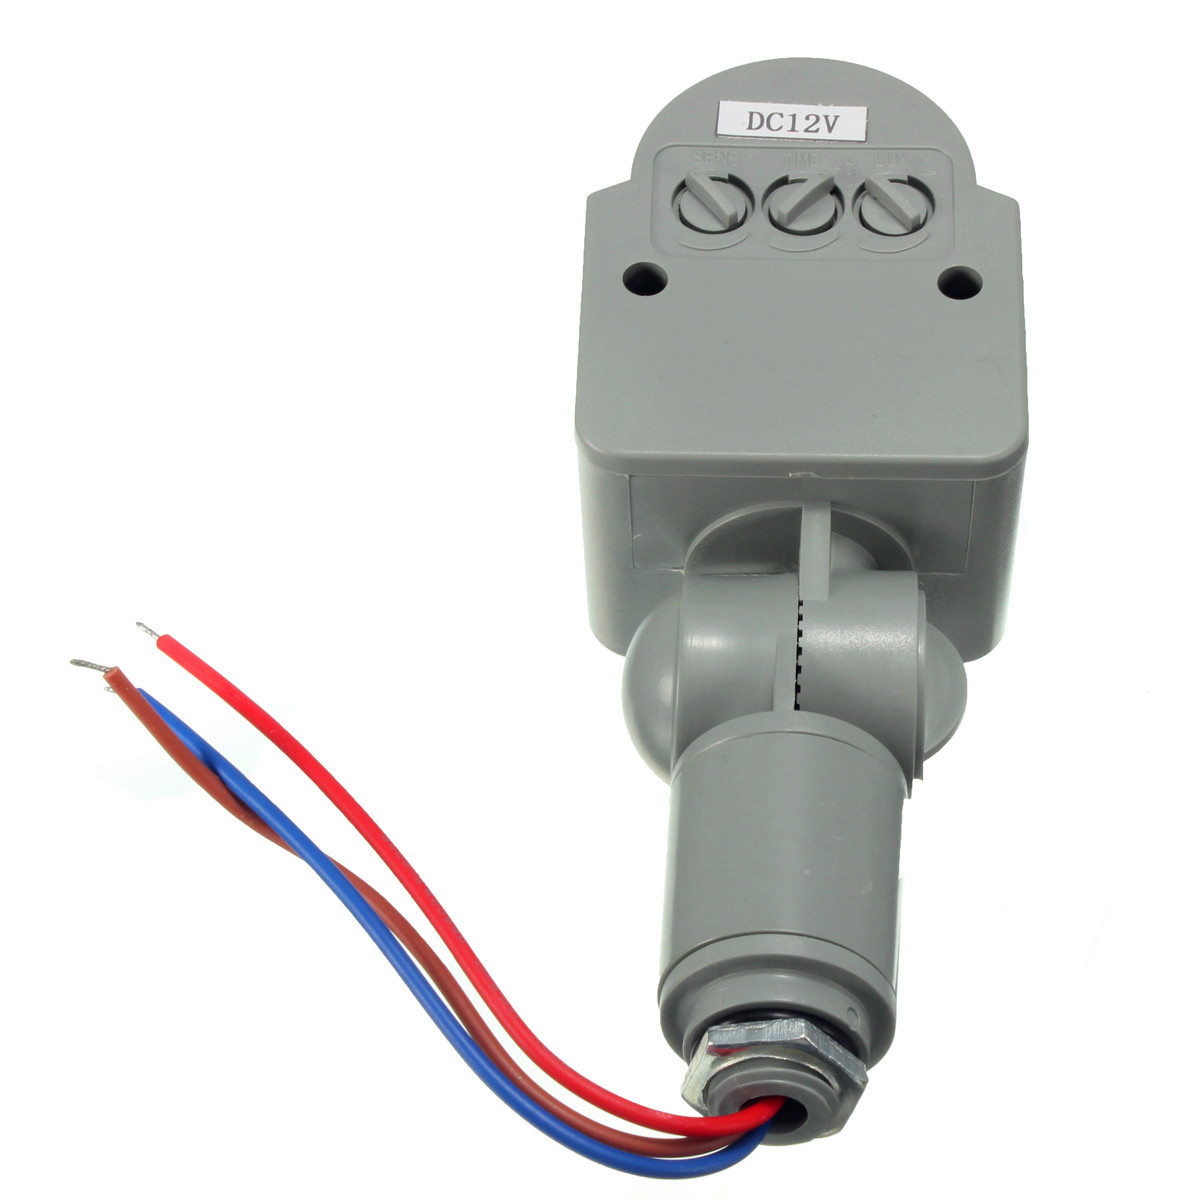 12v Dc Outdoor Automatic Infrared Pir Motion Sensor Switch For Led Light Excelle Ebay